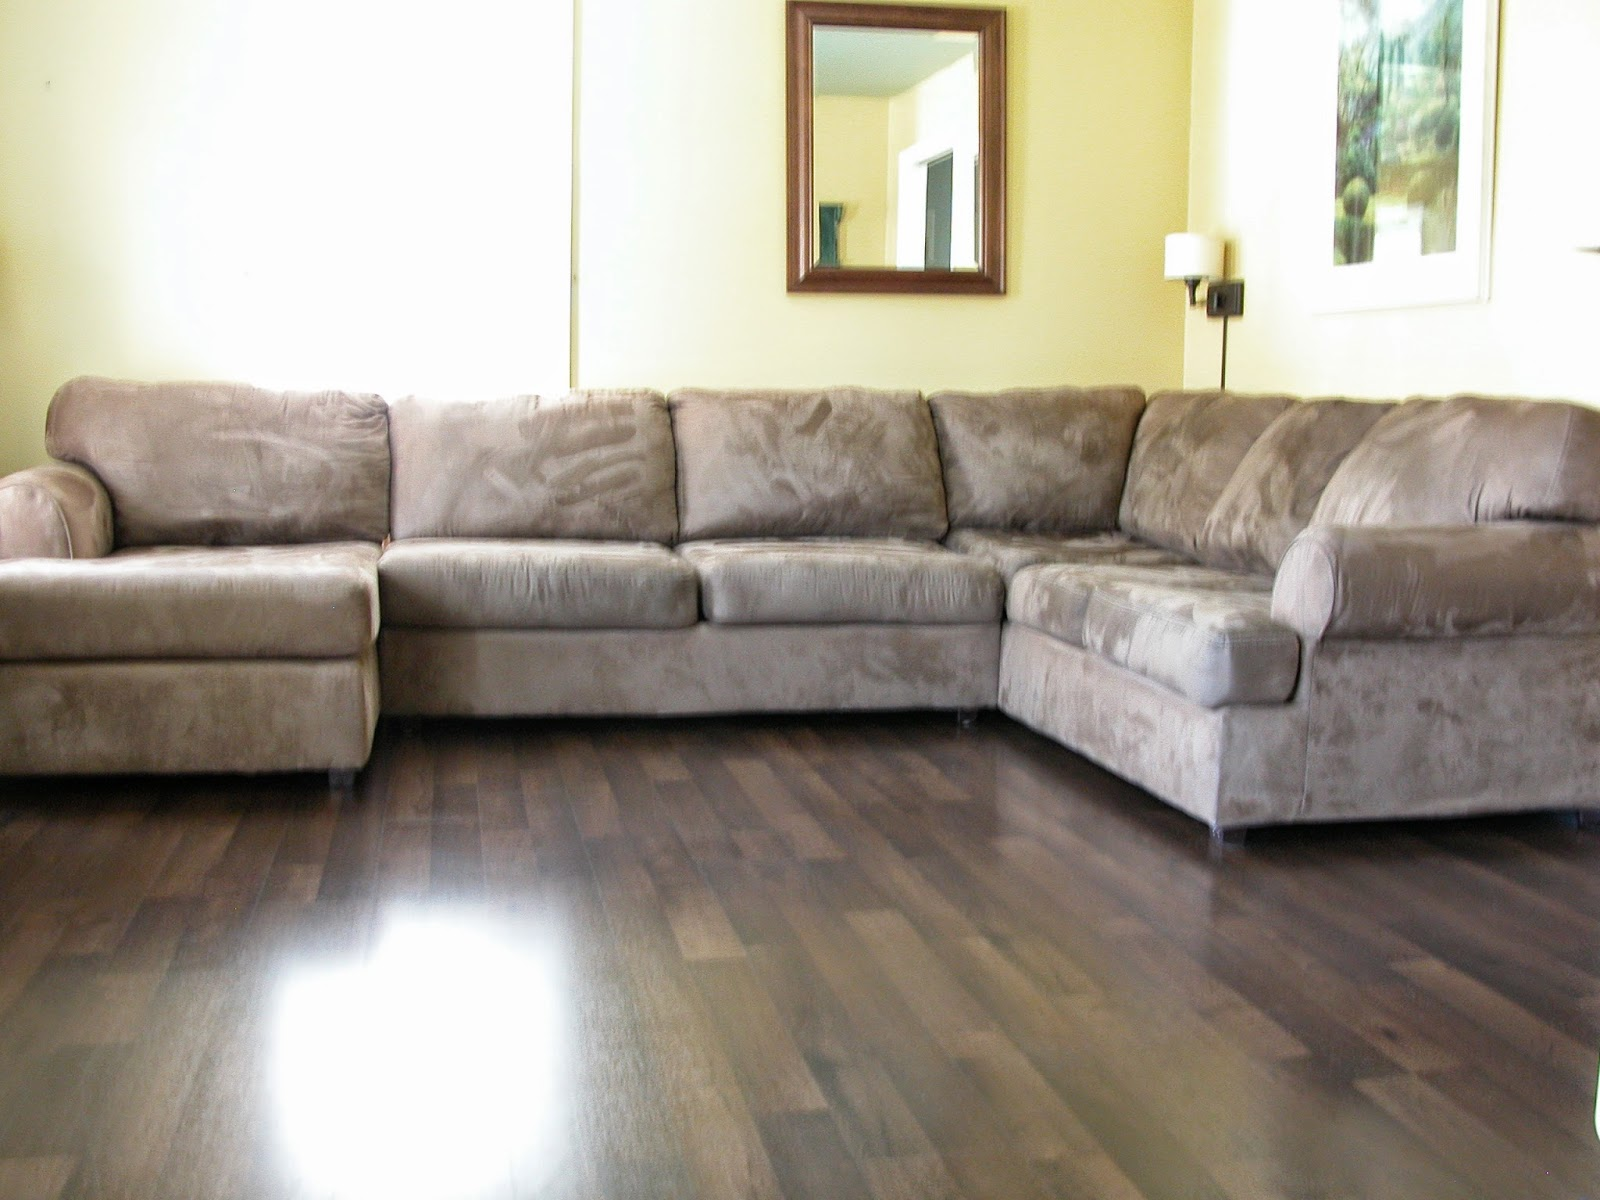 Swell Separating A Sectional Sofa Other Changes Love My Simple Uwap Interior Chair Design Uwaporg